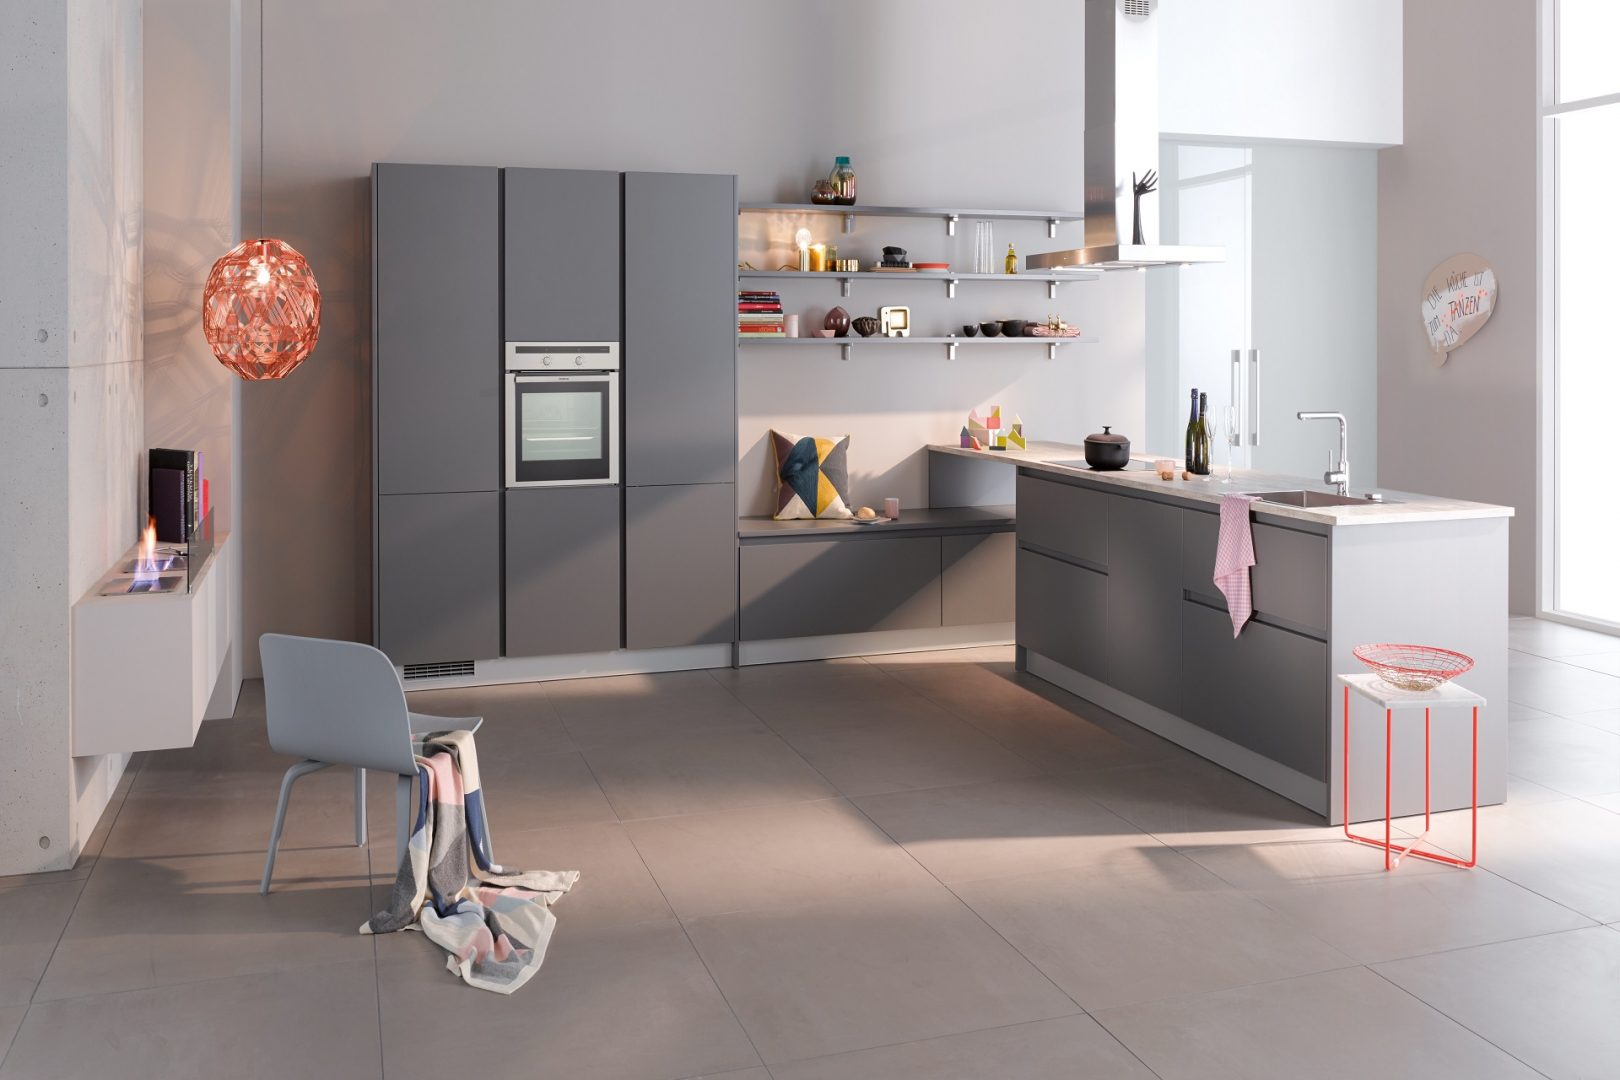 This kitchen by German supplier Brigitte features their DELTA range in finish 'Onyx Grey' laminated melamine with shaped edges on all sides.